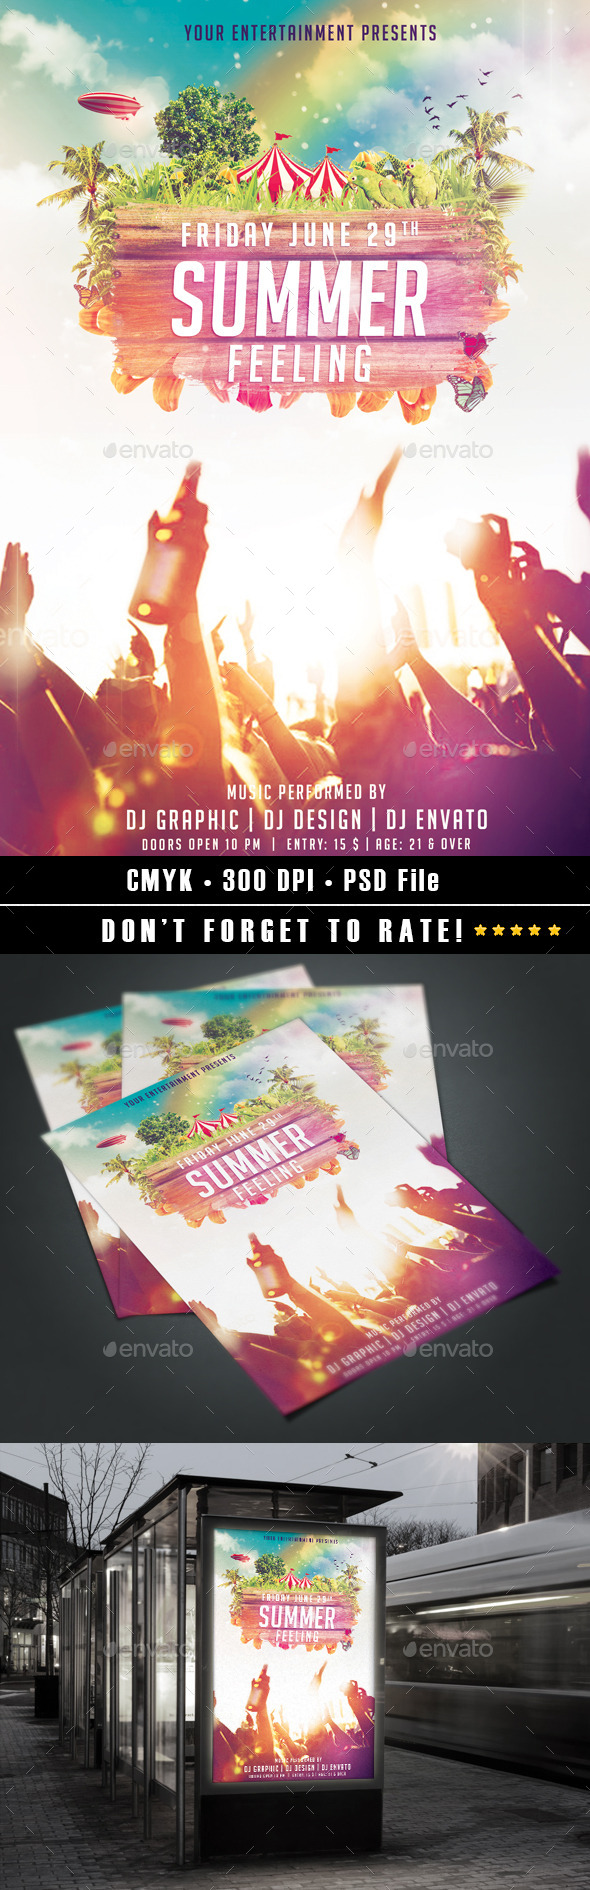 GraphicRiver Summer Feeling 11144936